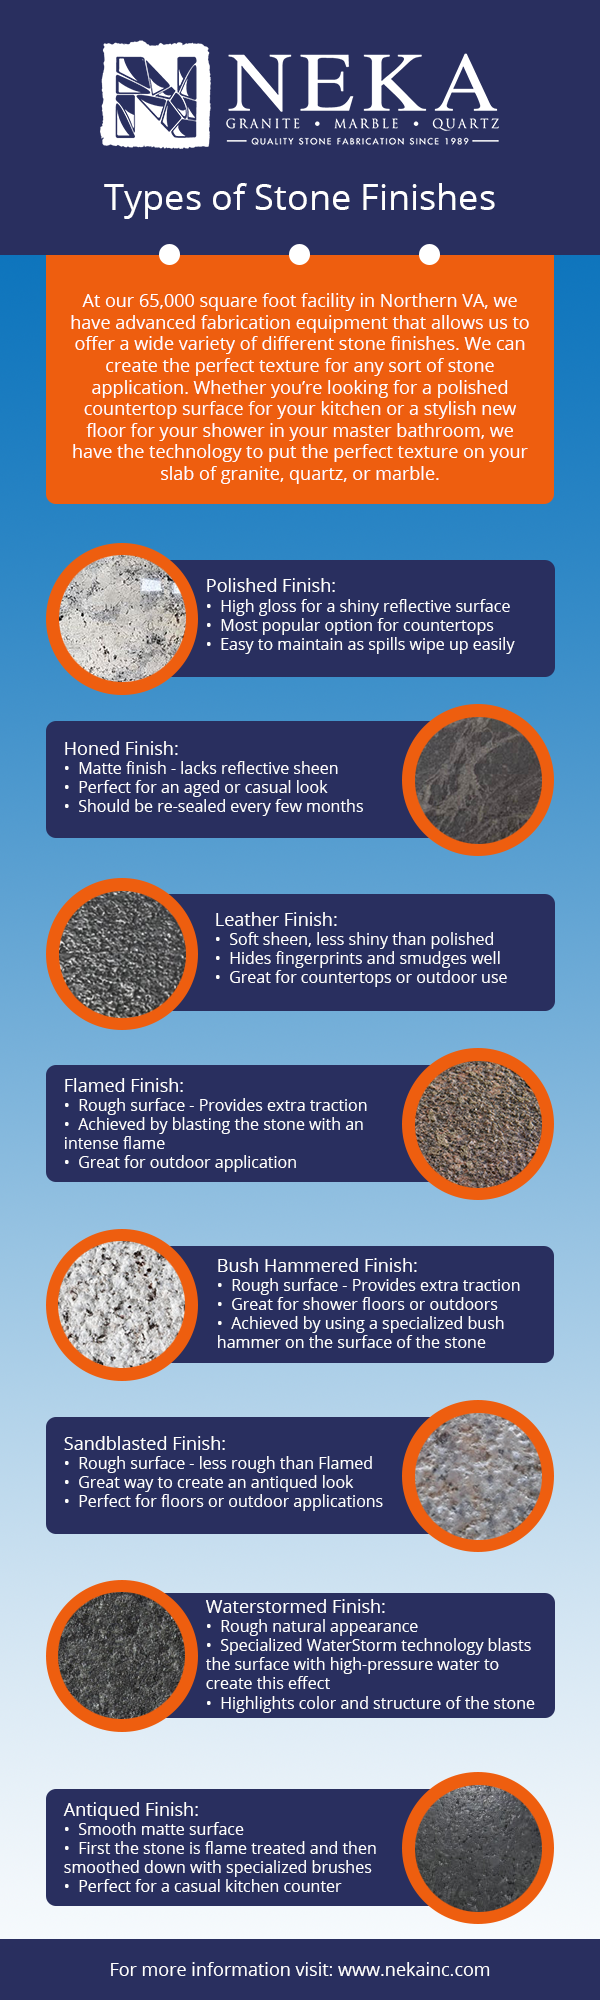 Infographic with stone finishing options available at NEKA Granite Marble Quartz